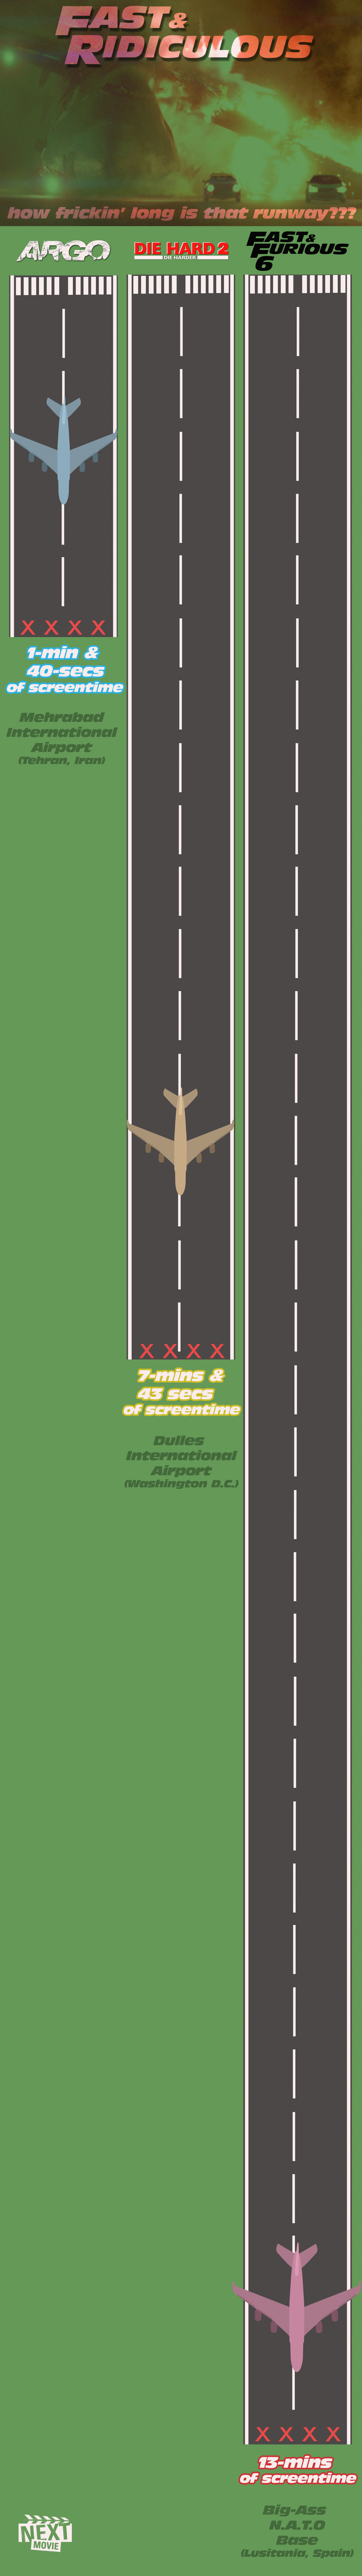 Fast and Furious 6 How Long Was That Runway? Infographic